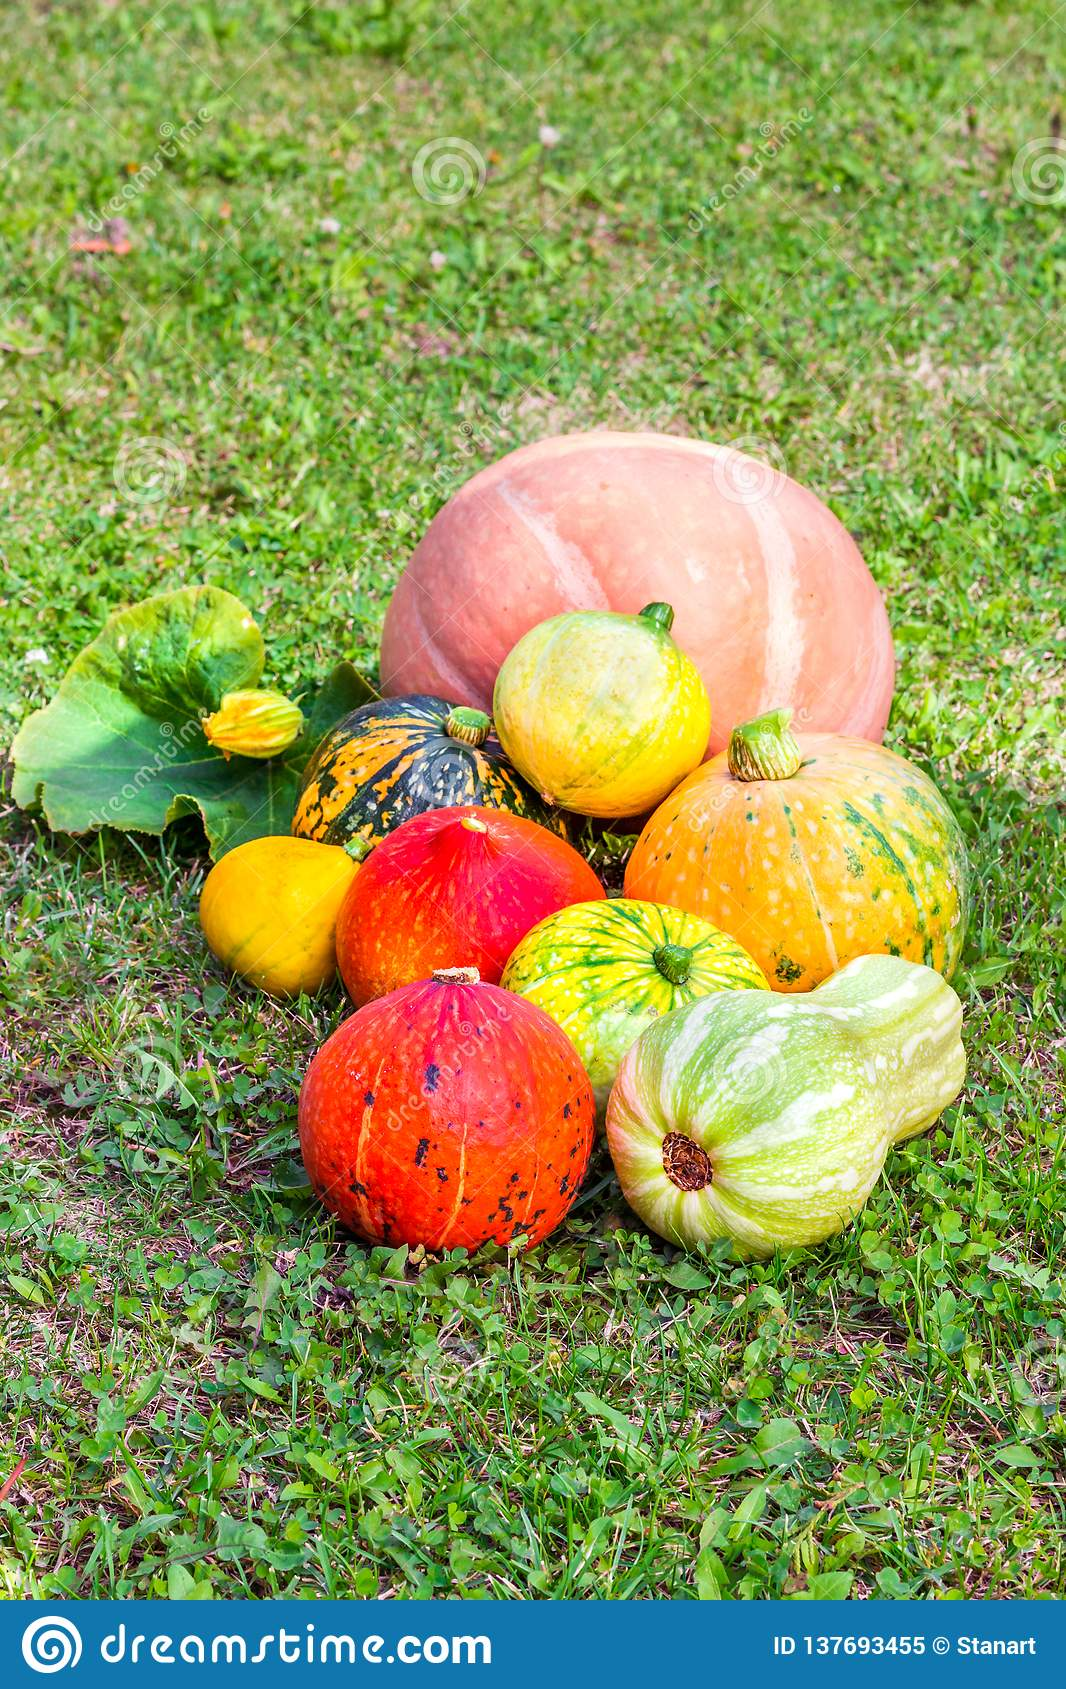 Various pumpkins cultivar squash plant Cucurbita pepo fresh from the market as close up for thanksgiving or decorate on halloween